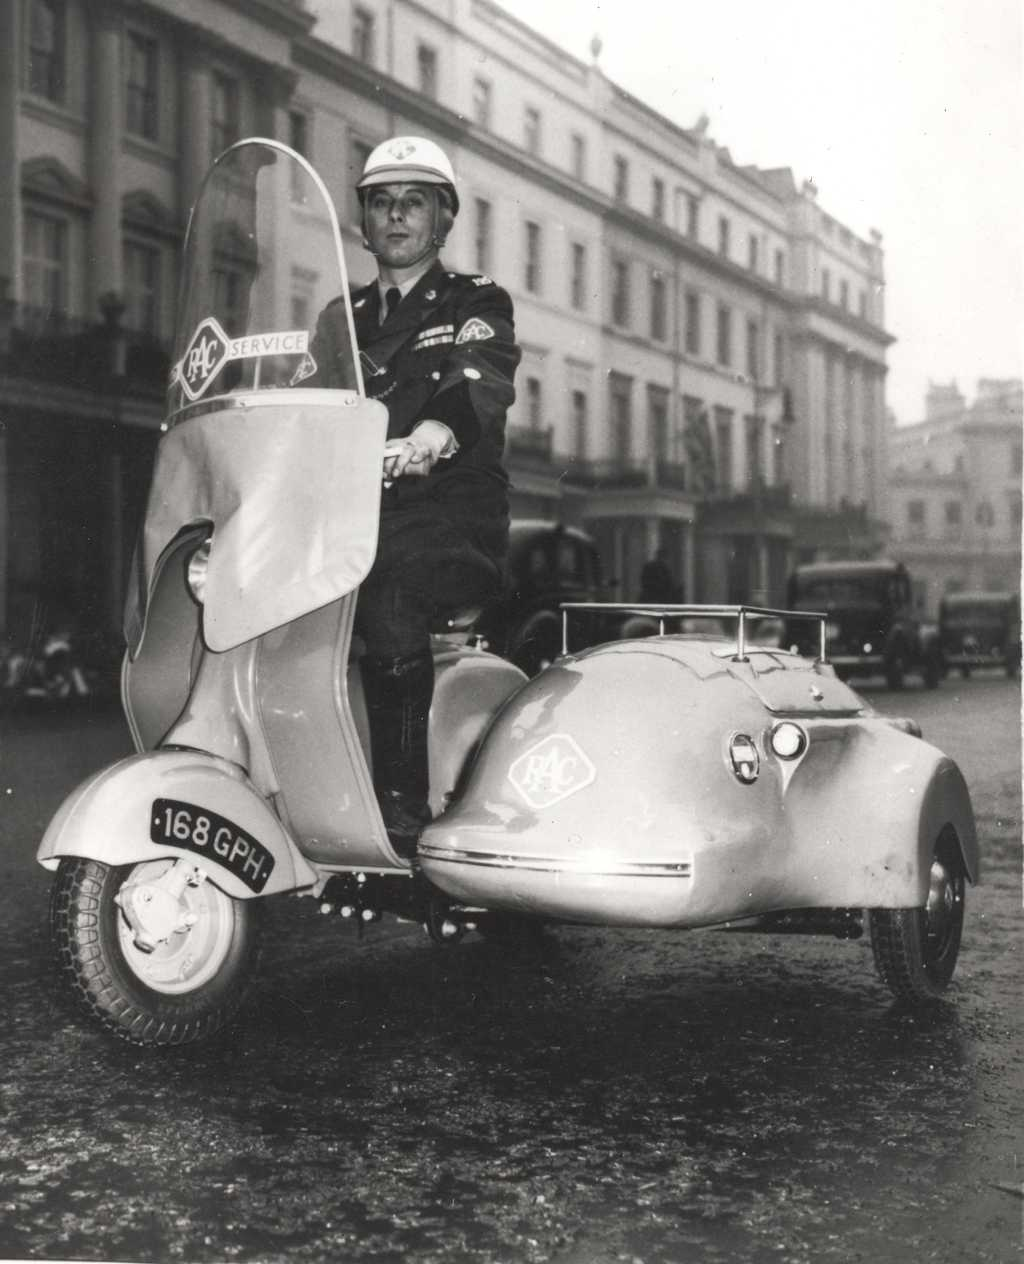 Policeman with sidecar